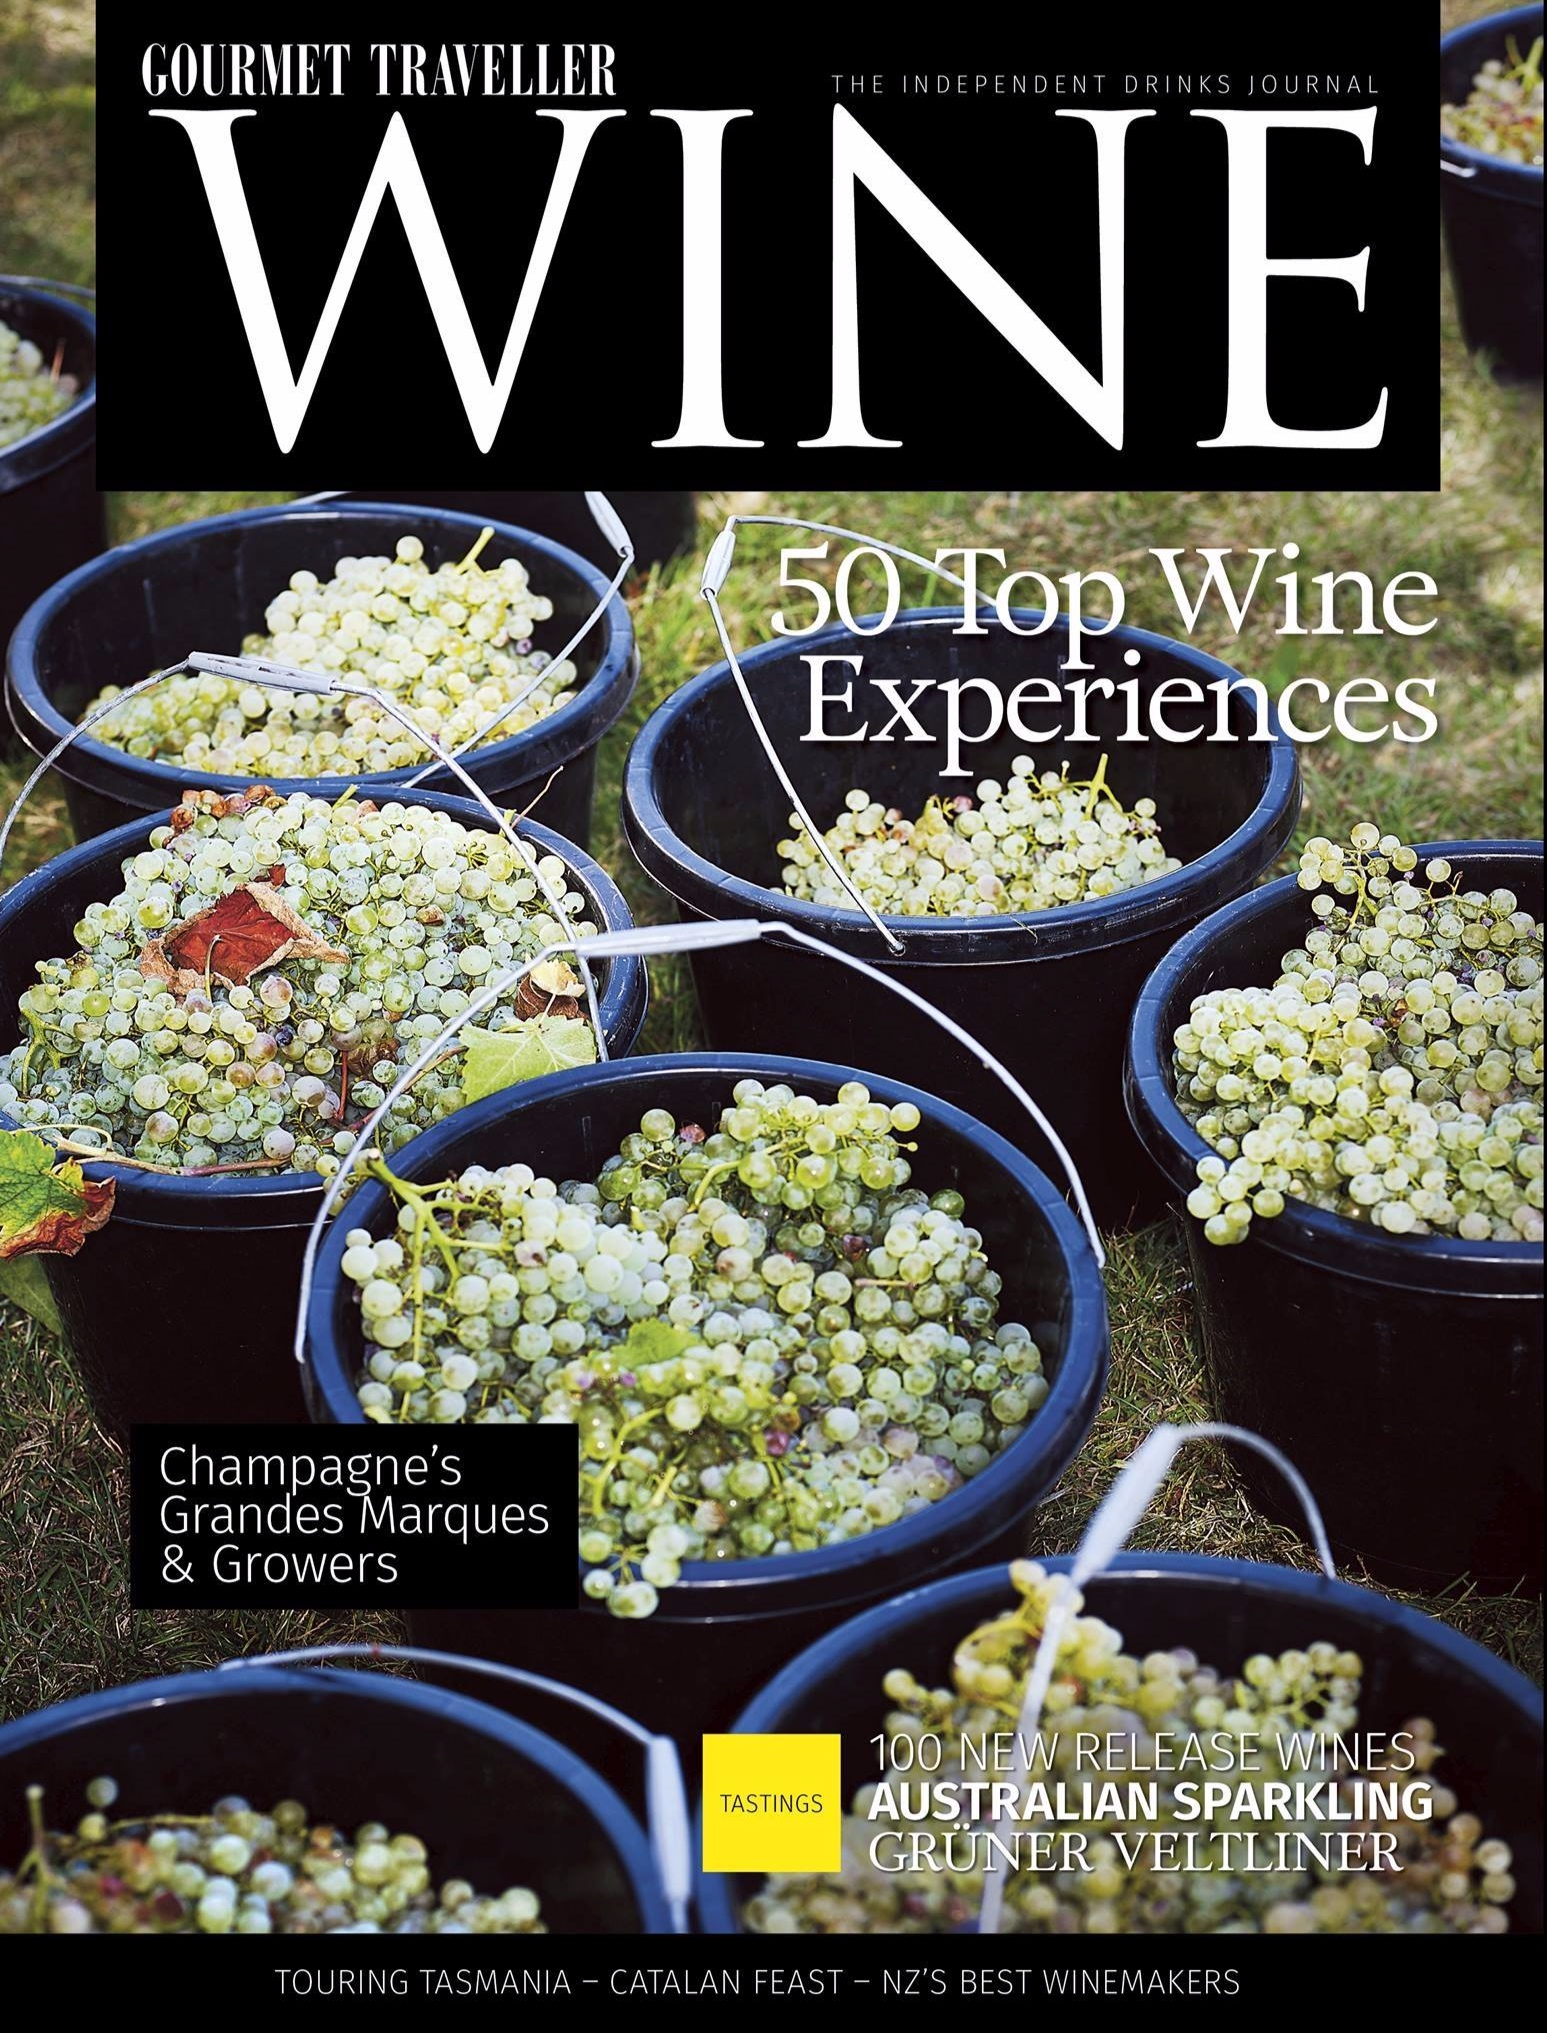 Gourmet Traveller Wine Magazine featuring Leading Ladies in Wine Dinner Perth with Anja Lewis from Canny Grapes